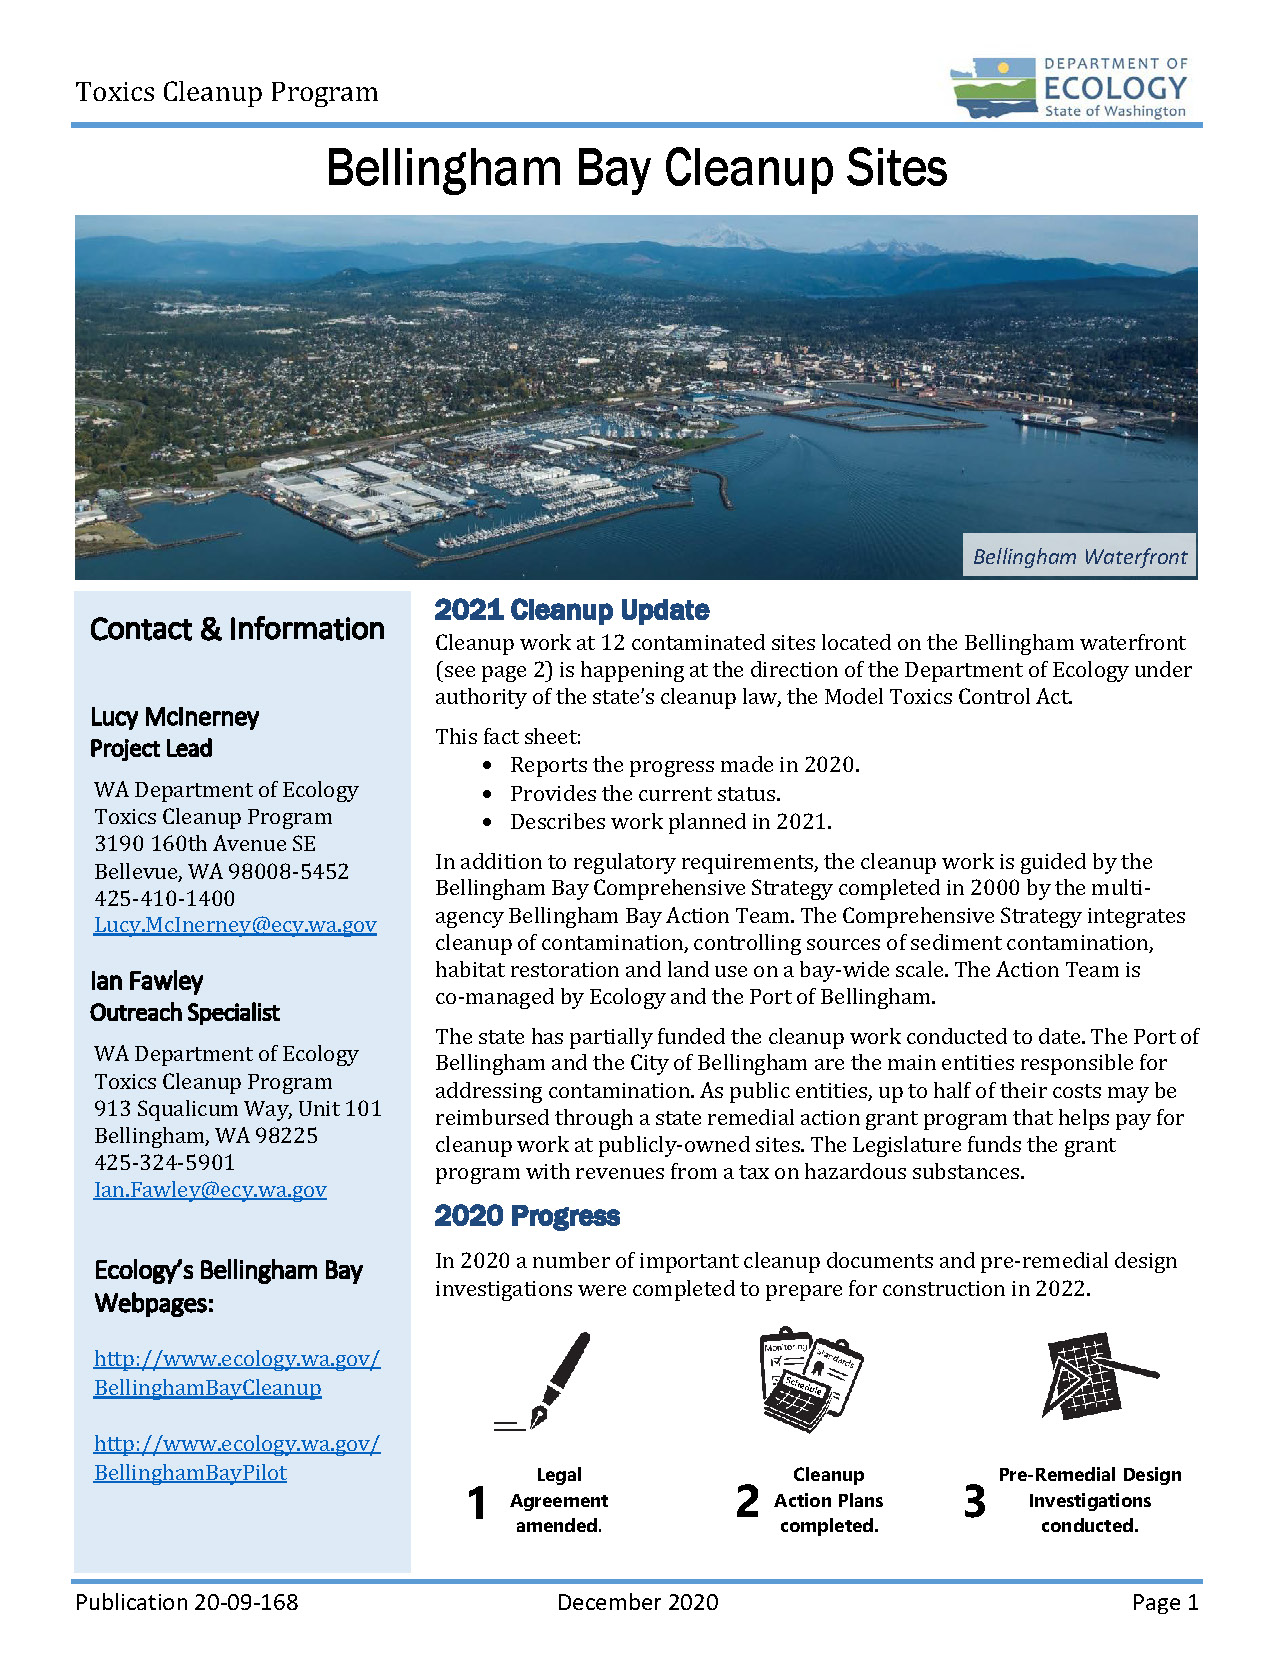 Click to download fact sheet describing 2020 progress and 2021 plans.